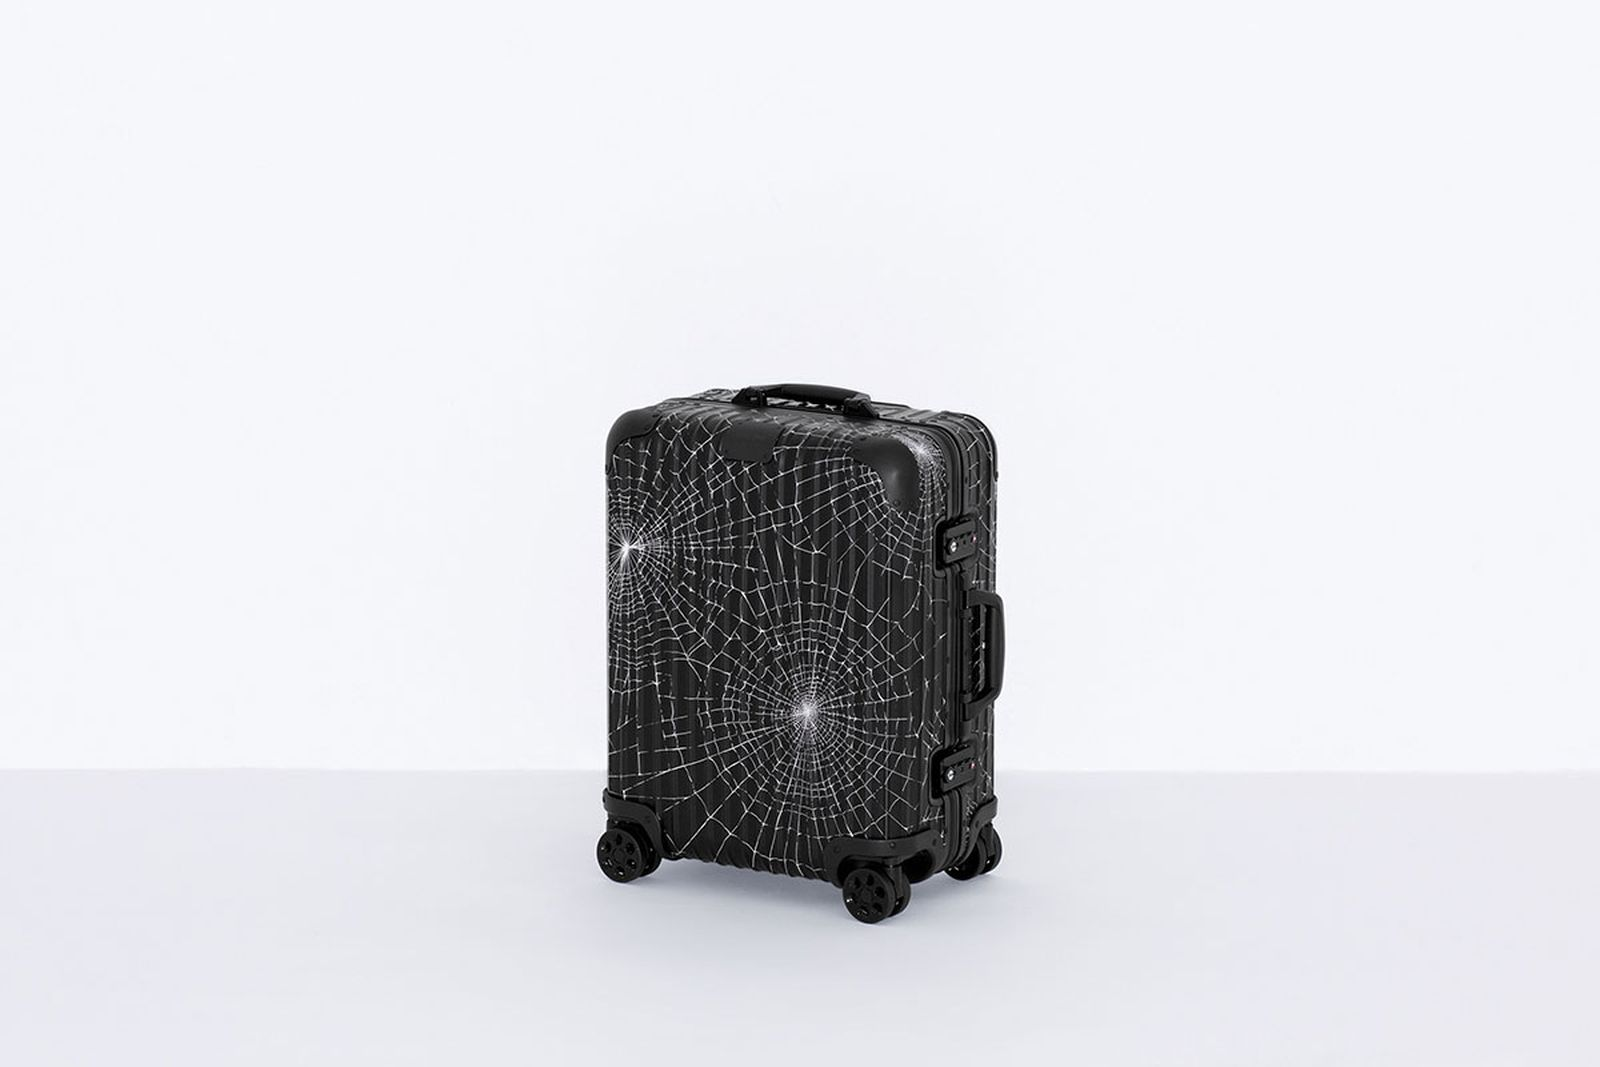 Supreme x RIMOWA luggage collection spider web